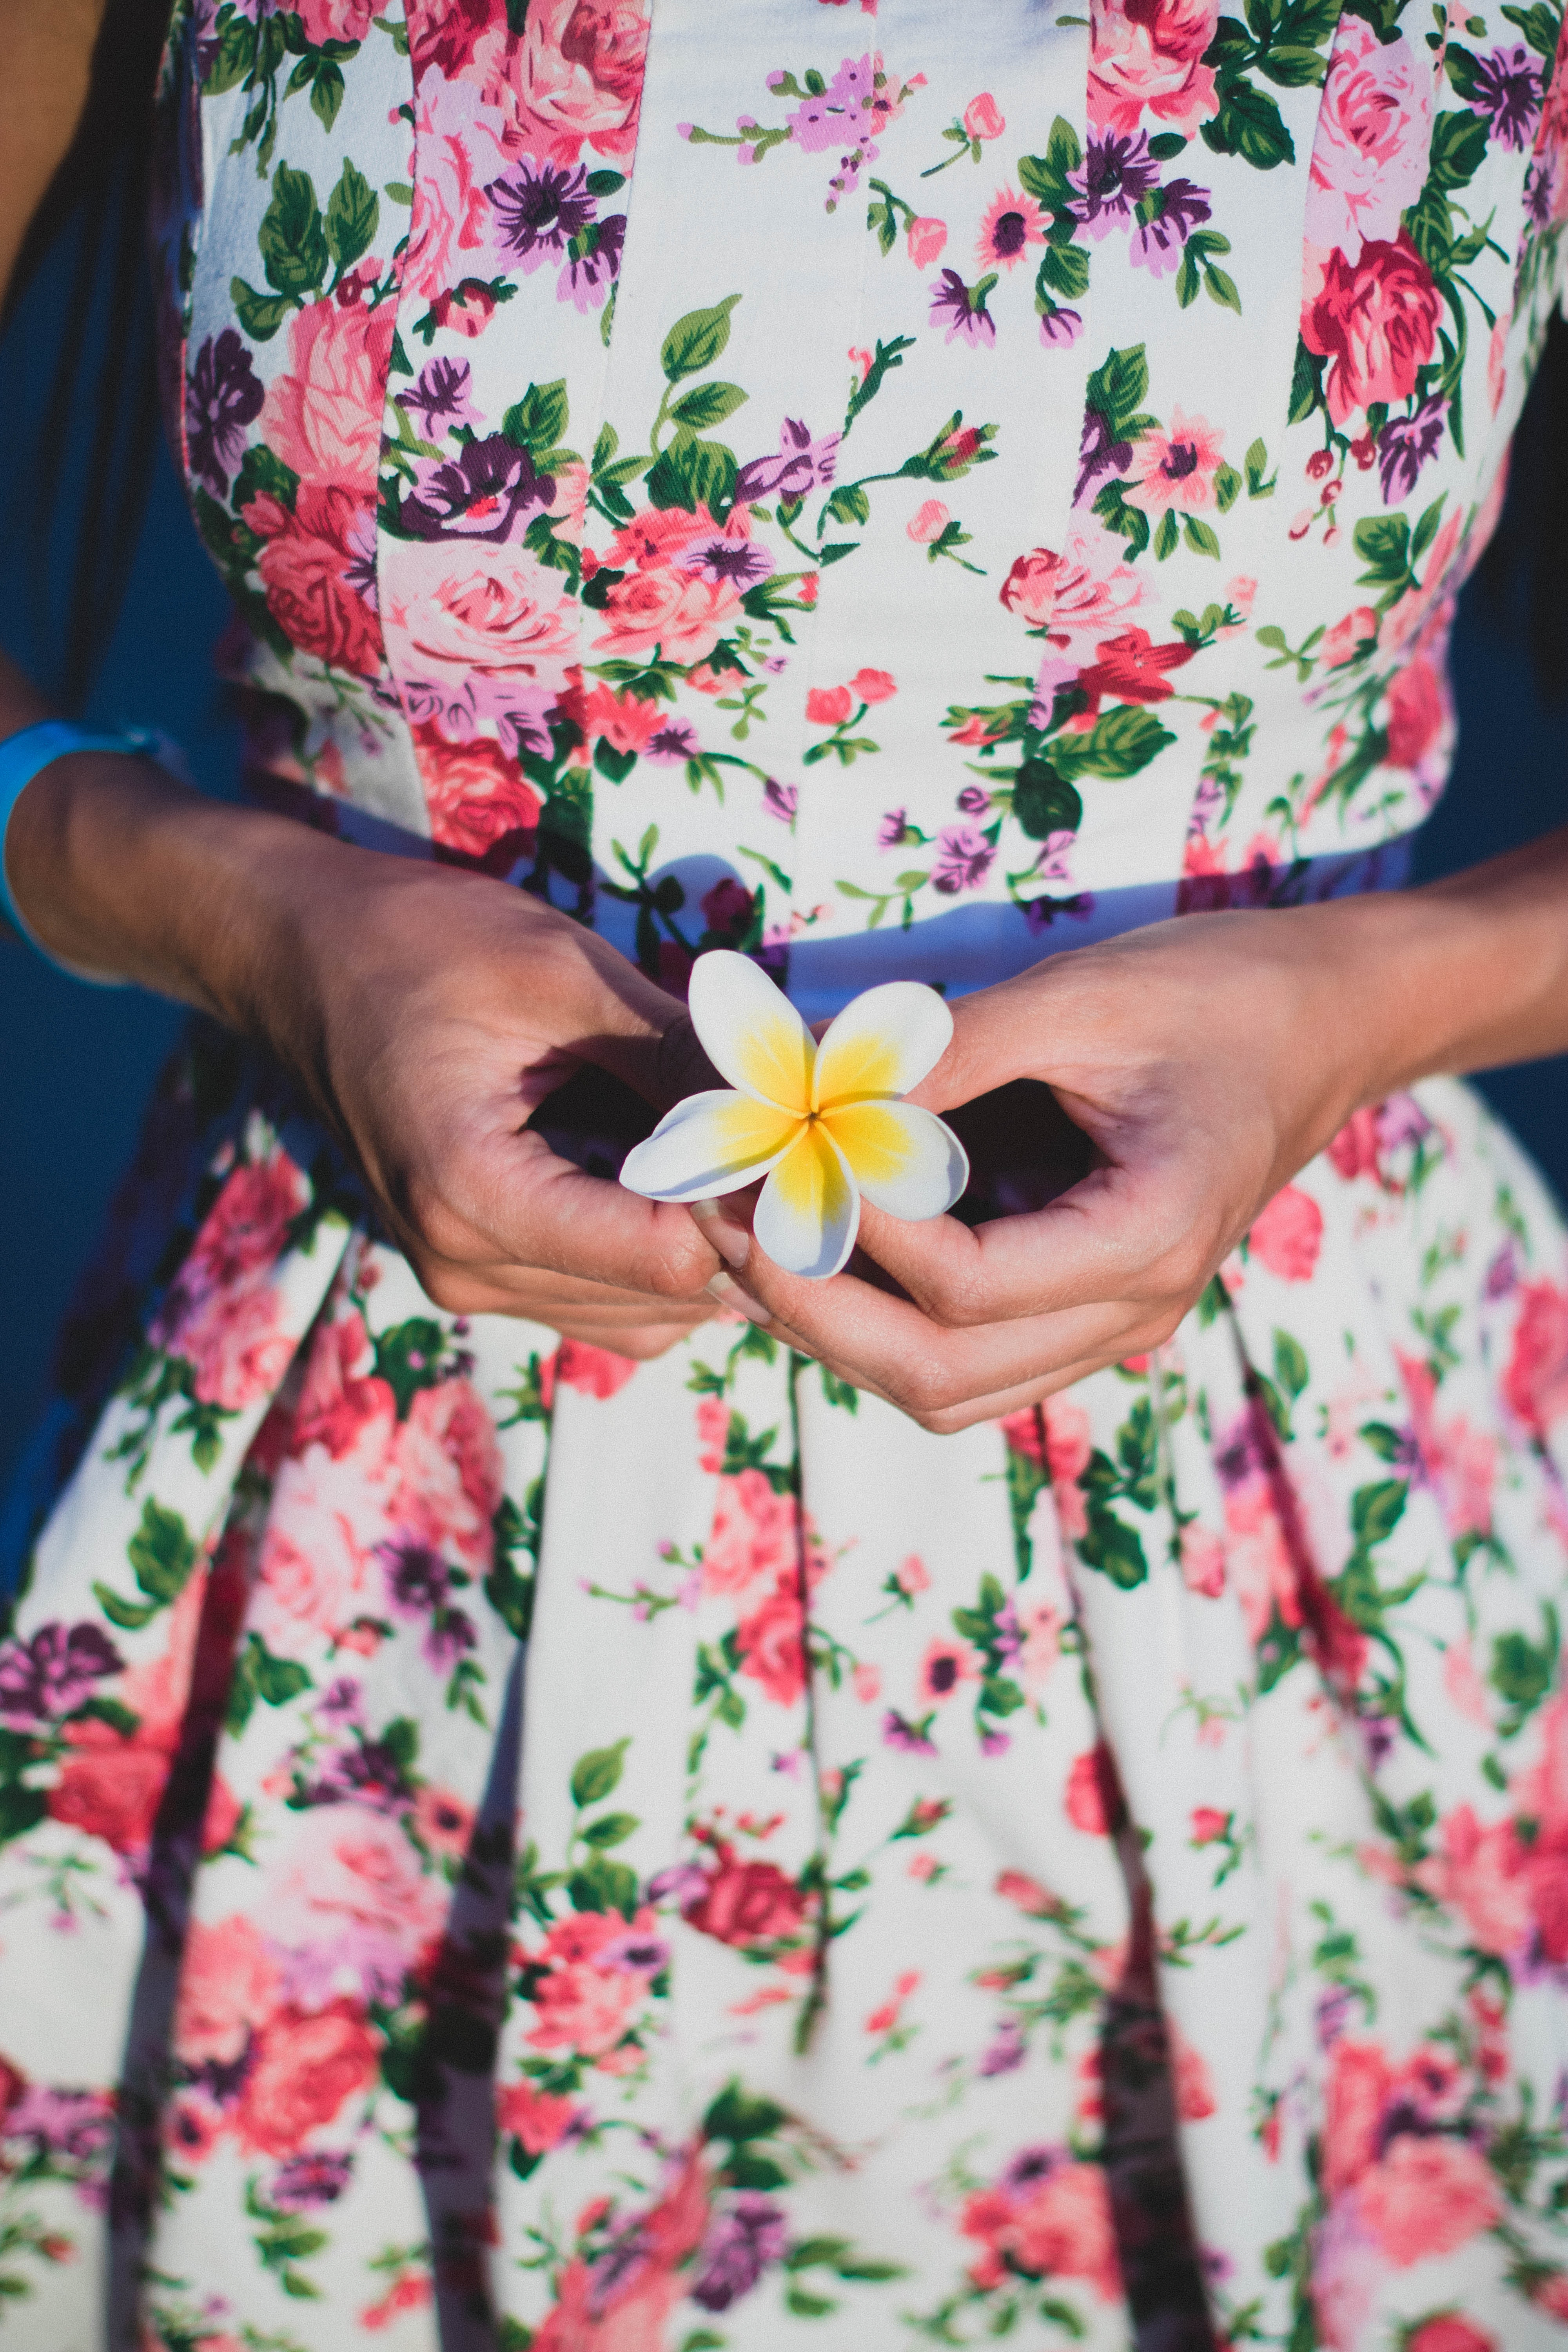 Woman in white and green floral dress holding flower photo